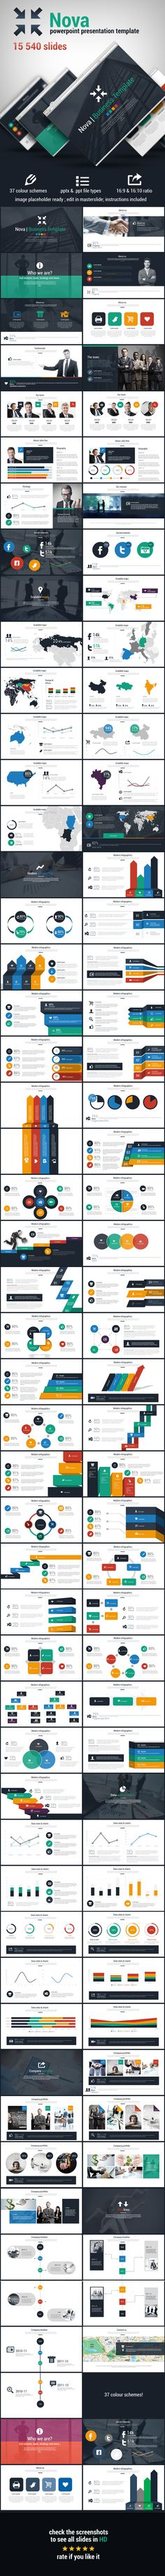 Nova Powerpoint Presentation Template #slides Download: http://graphicriver.net/item/nova-powerpoint-presentation-template/11253181?ref=ksioks